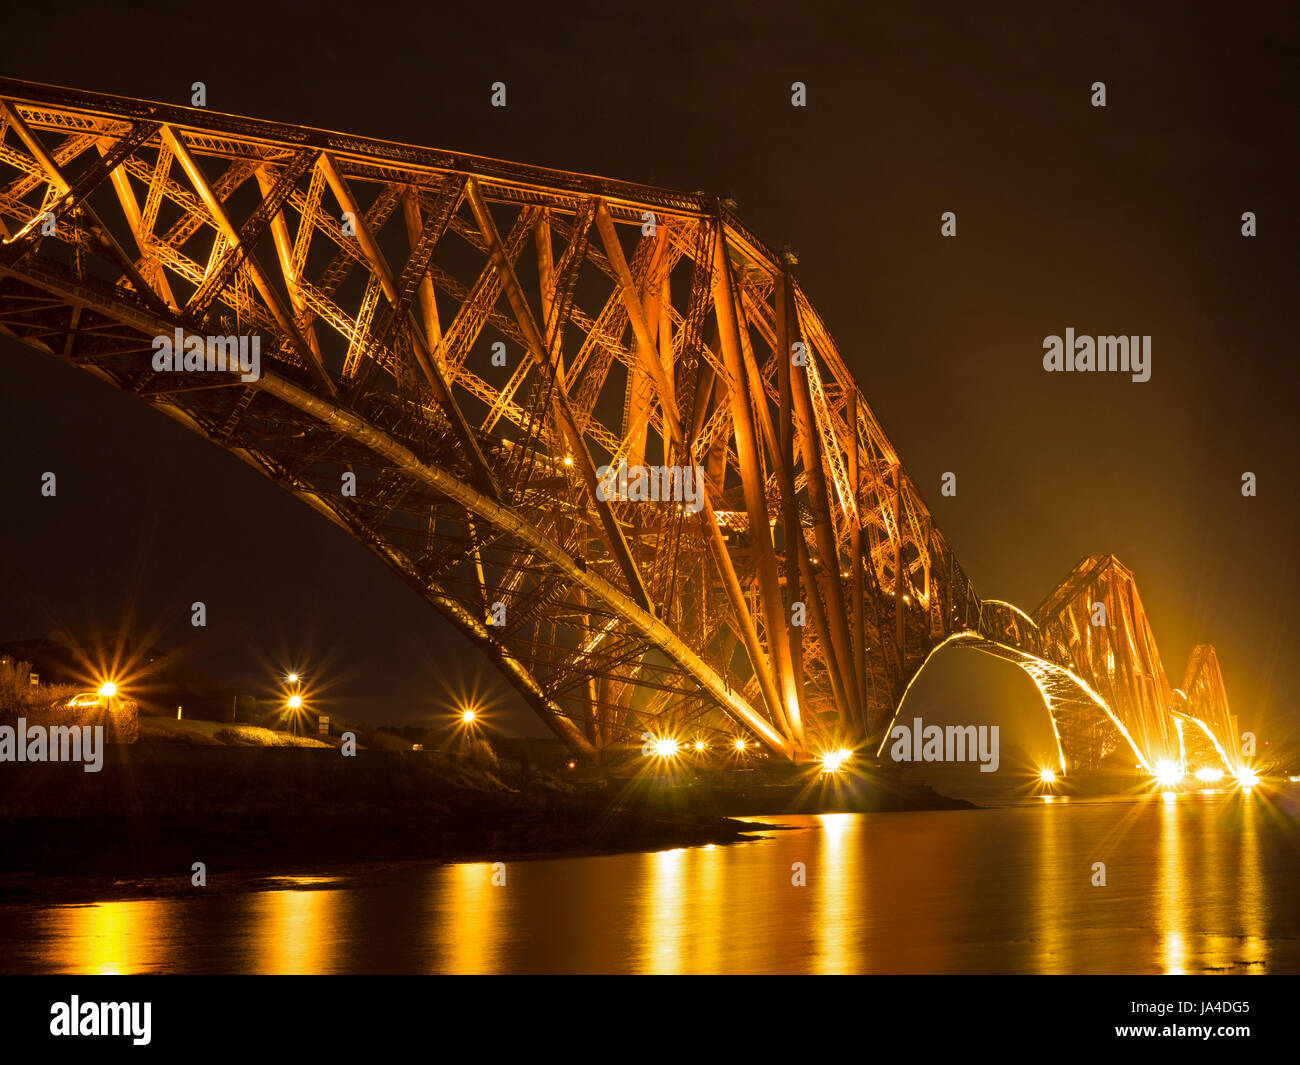 Forth Bridge at night - Stock Image